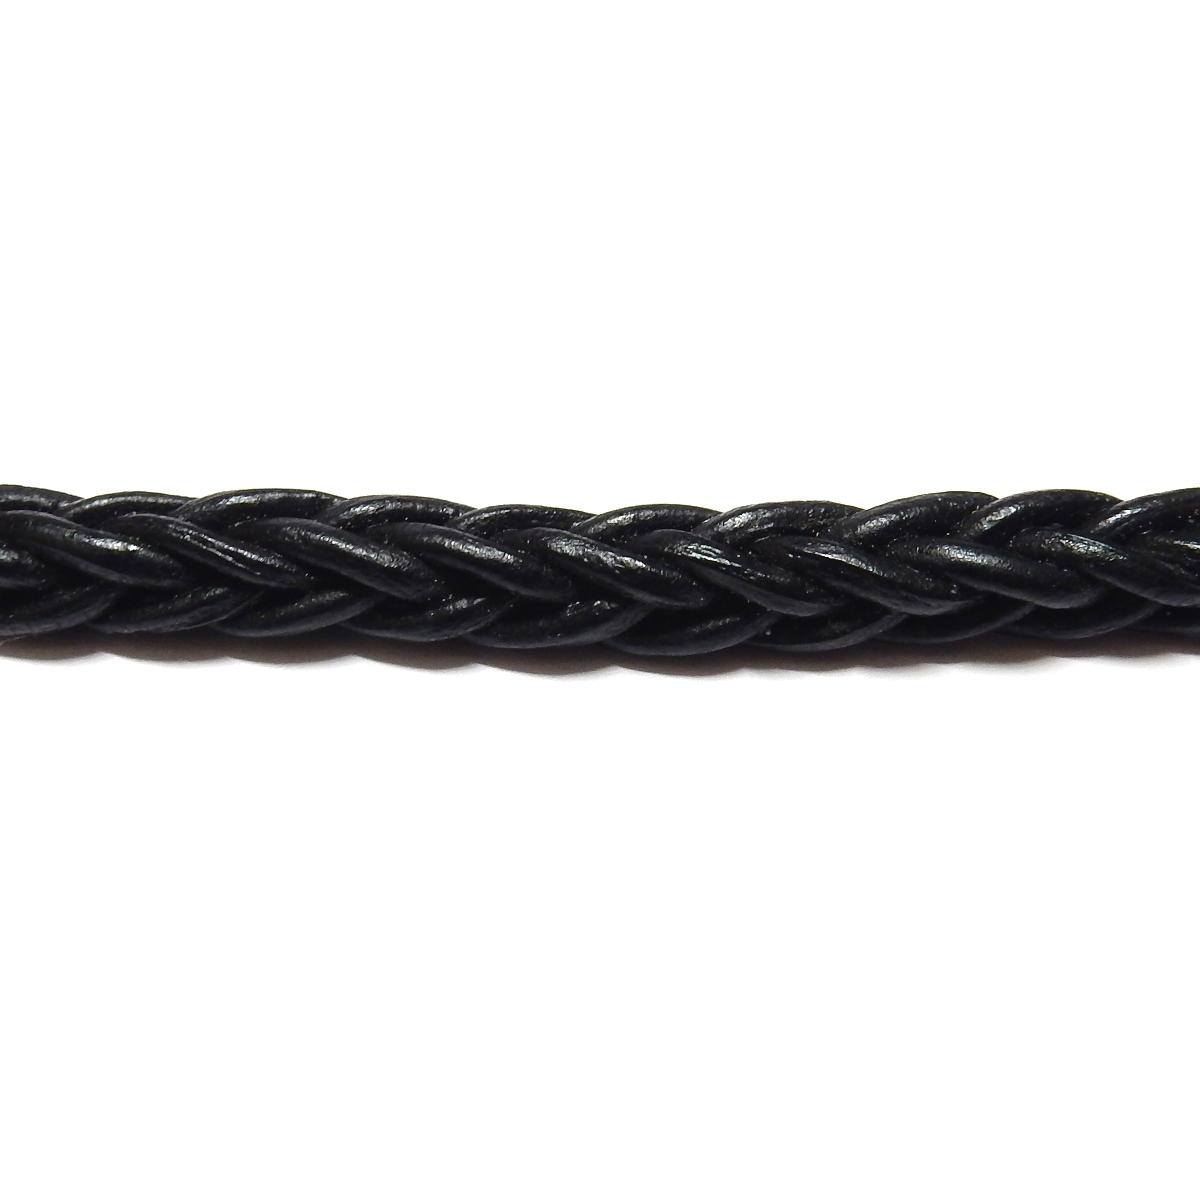 Square Braided Leather Cord 5mm - Black